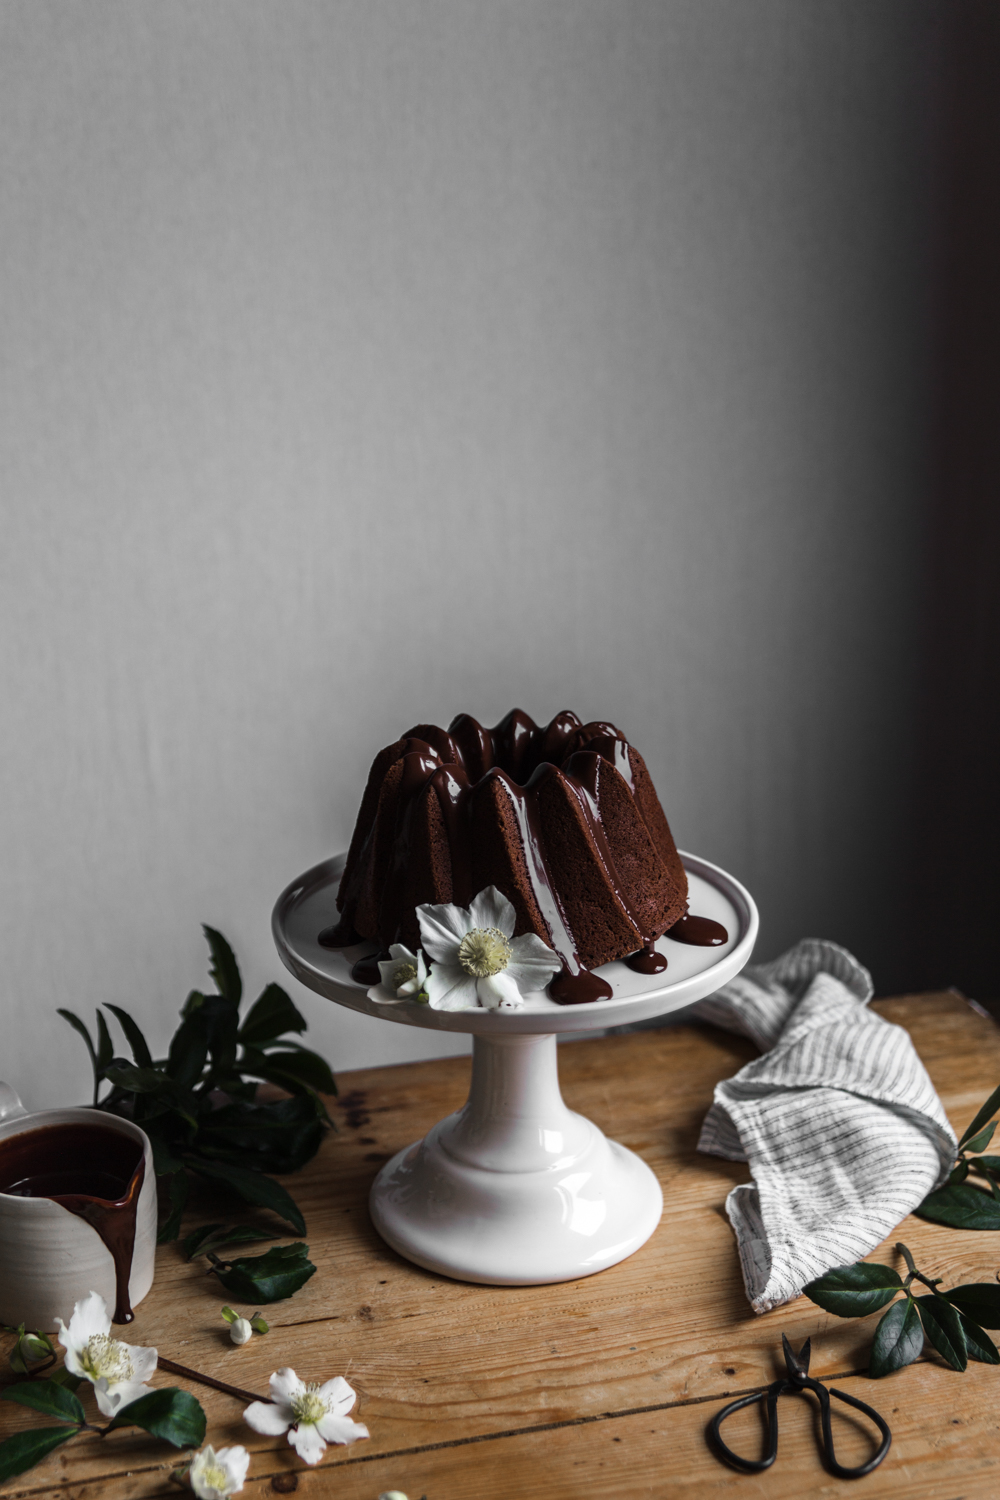 Bundt cake tout chocolat - Ophelie's Kitchen Book - Ophelie Lauret-20